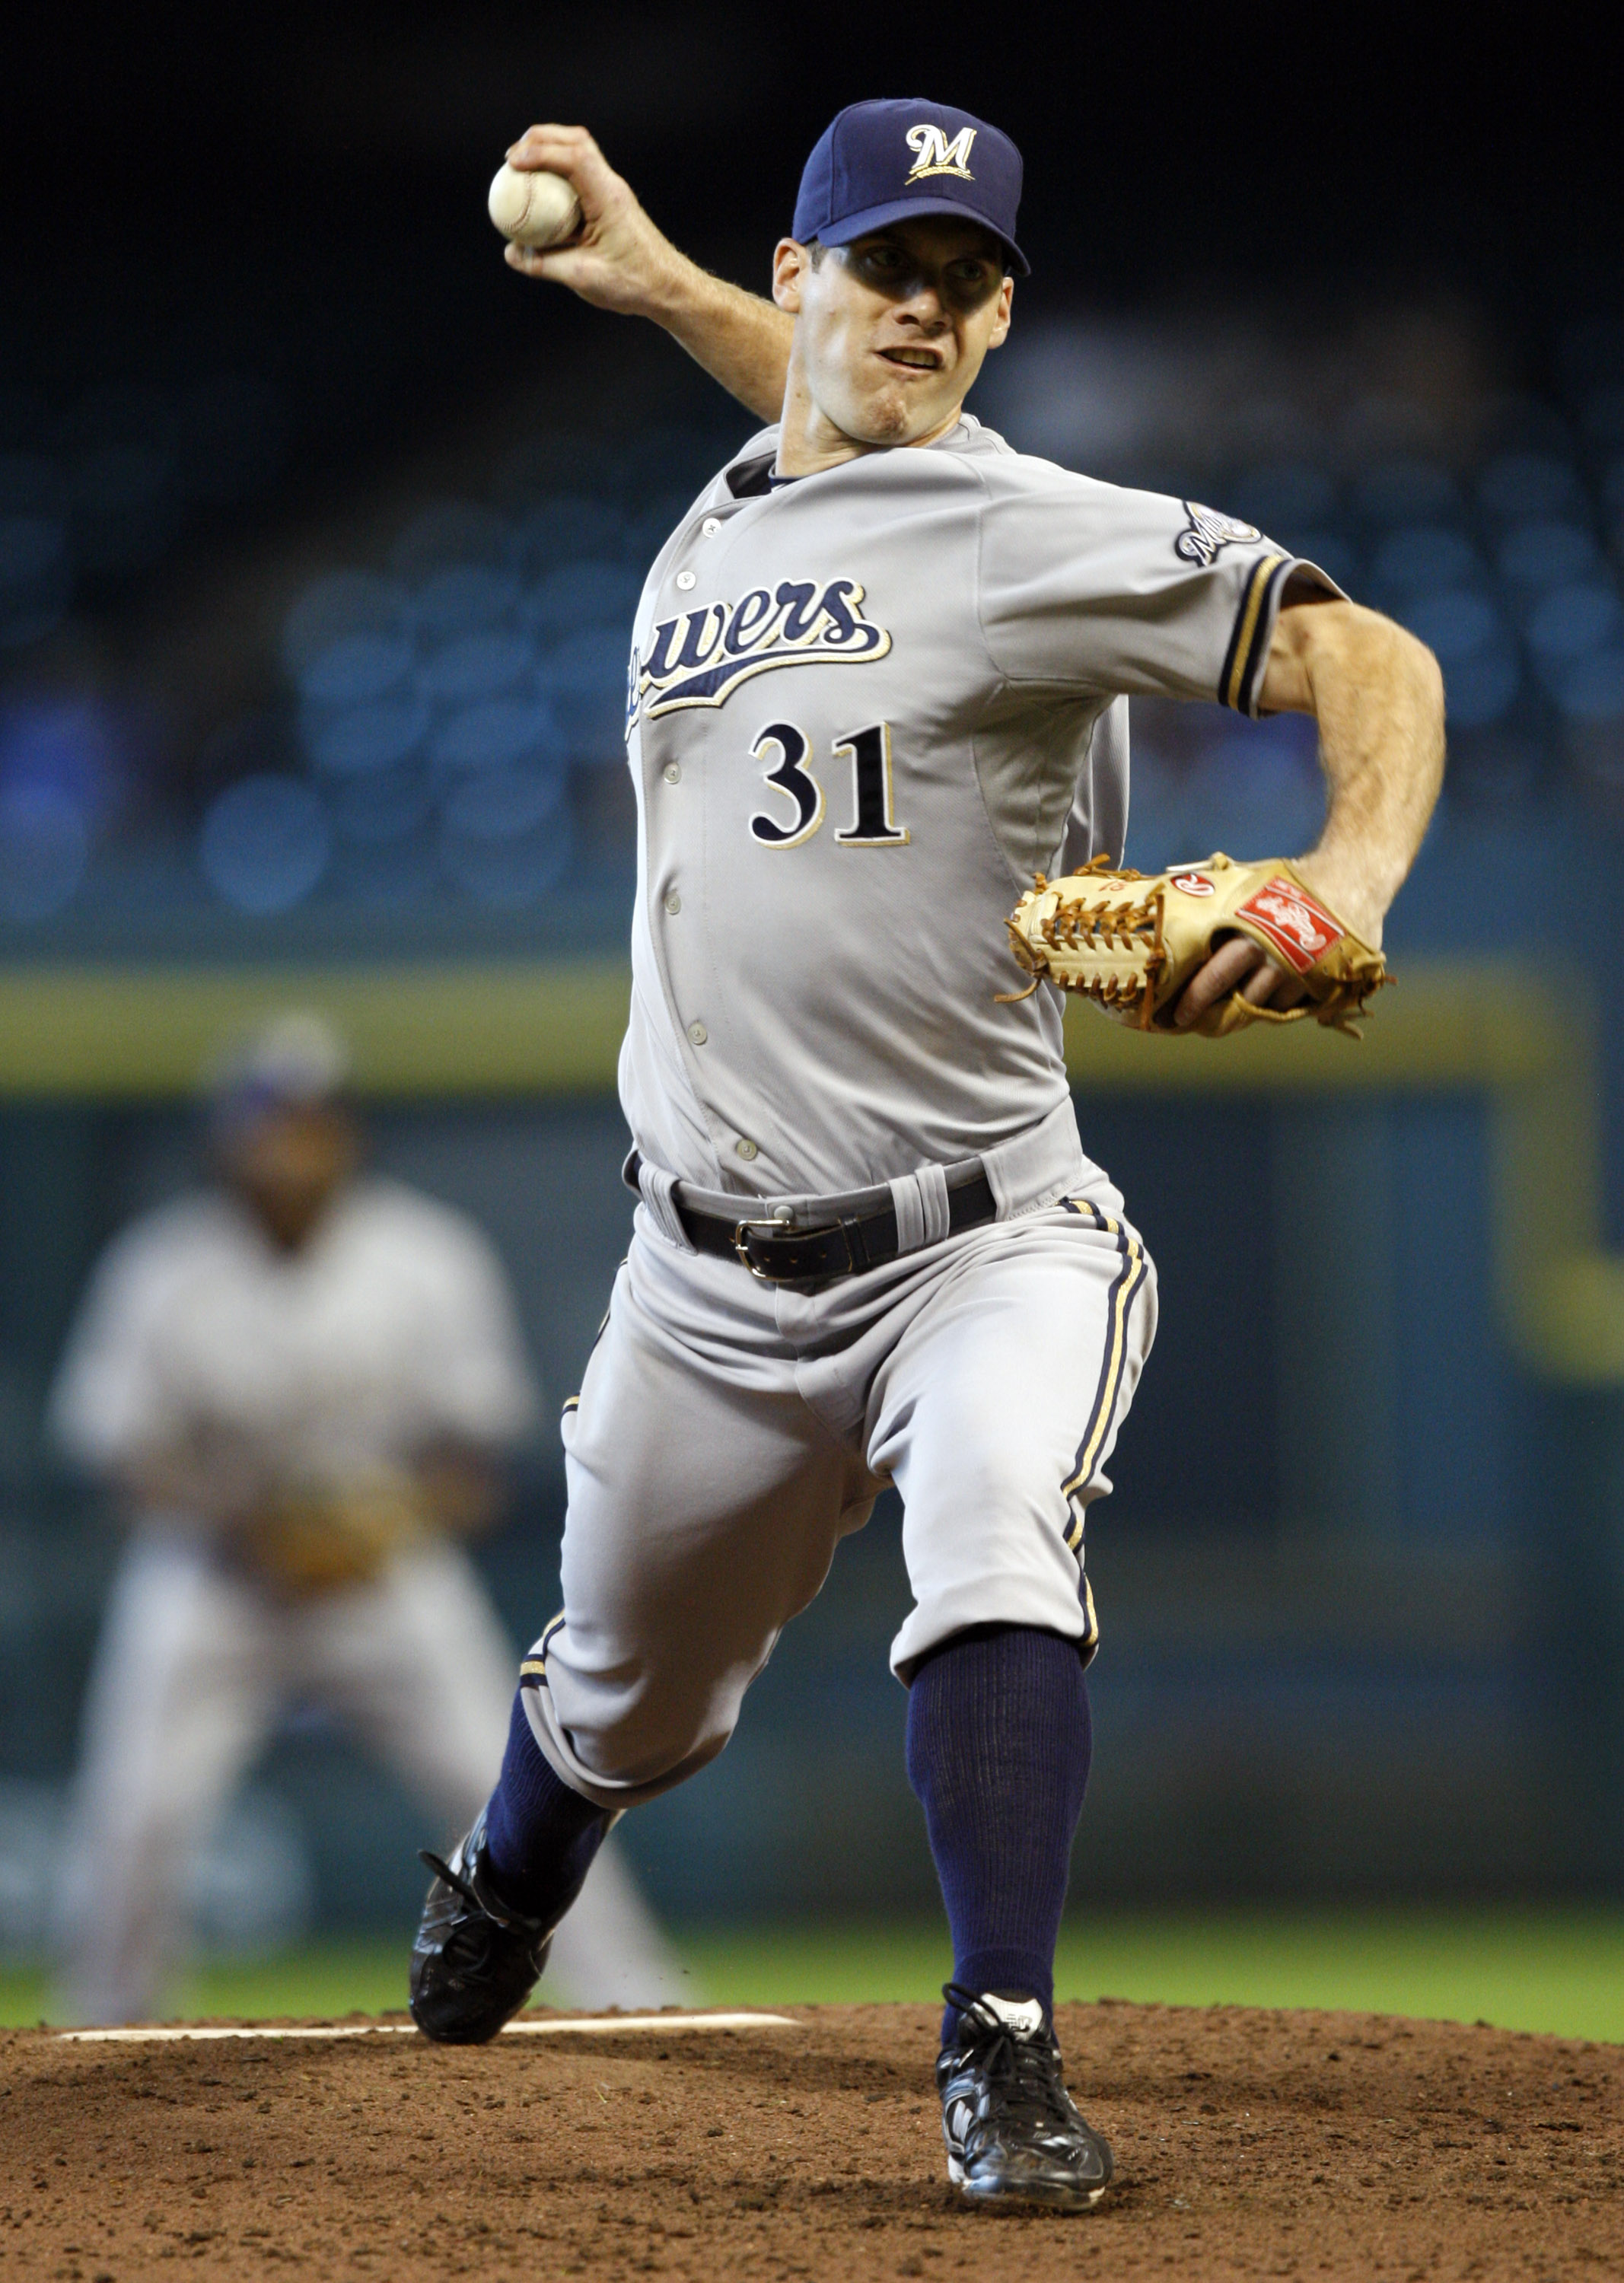 HOUSTON - SEPTEMBER 15:  Pitcher Dave Bush #31 of the Milwaukee Brewers throws against the Houston Astros at Minute Maid Park on September 15, 2010 in Houston, Texas.  (Photo by Bob Levey/Getty Images)